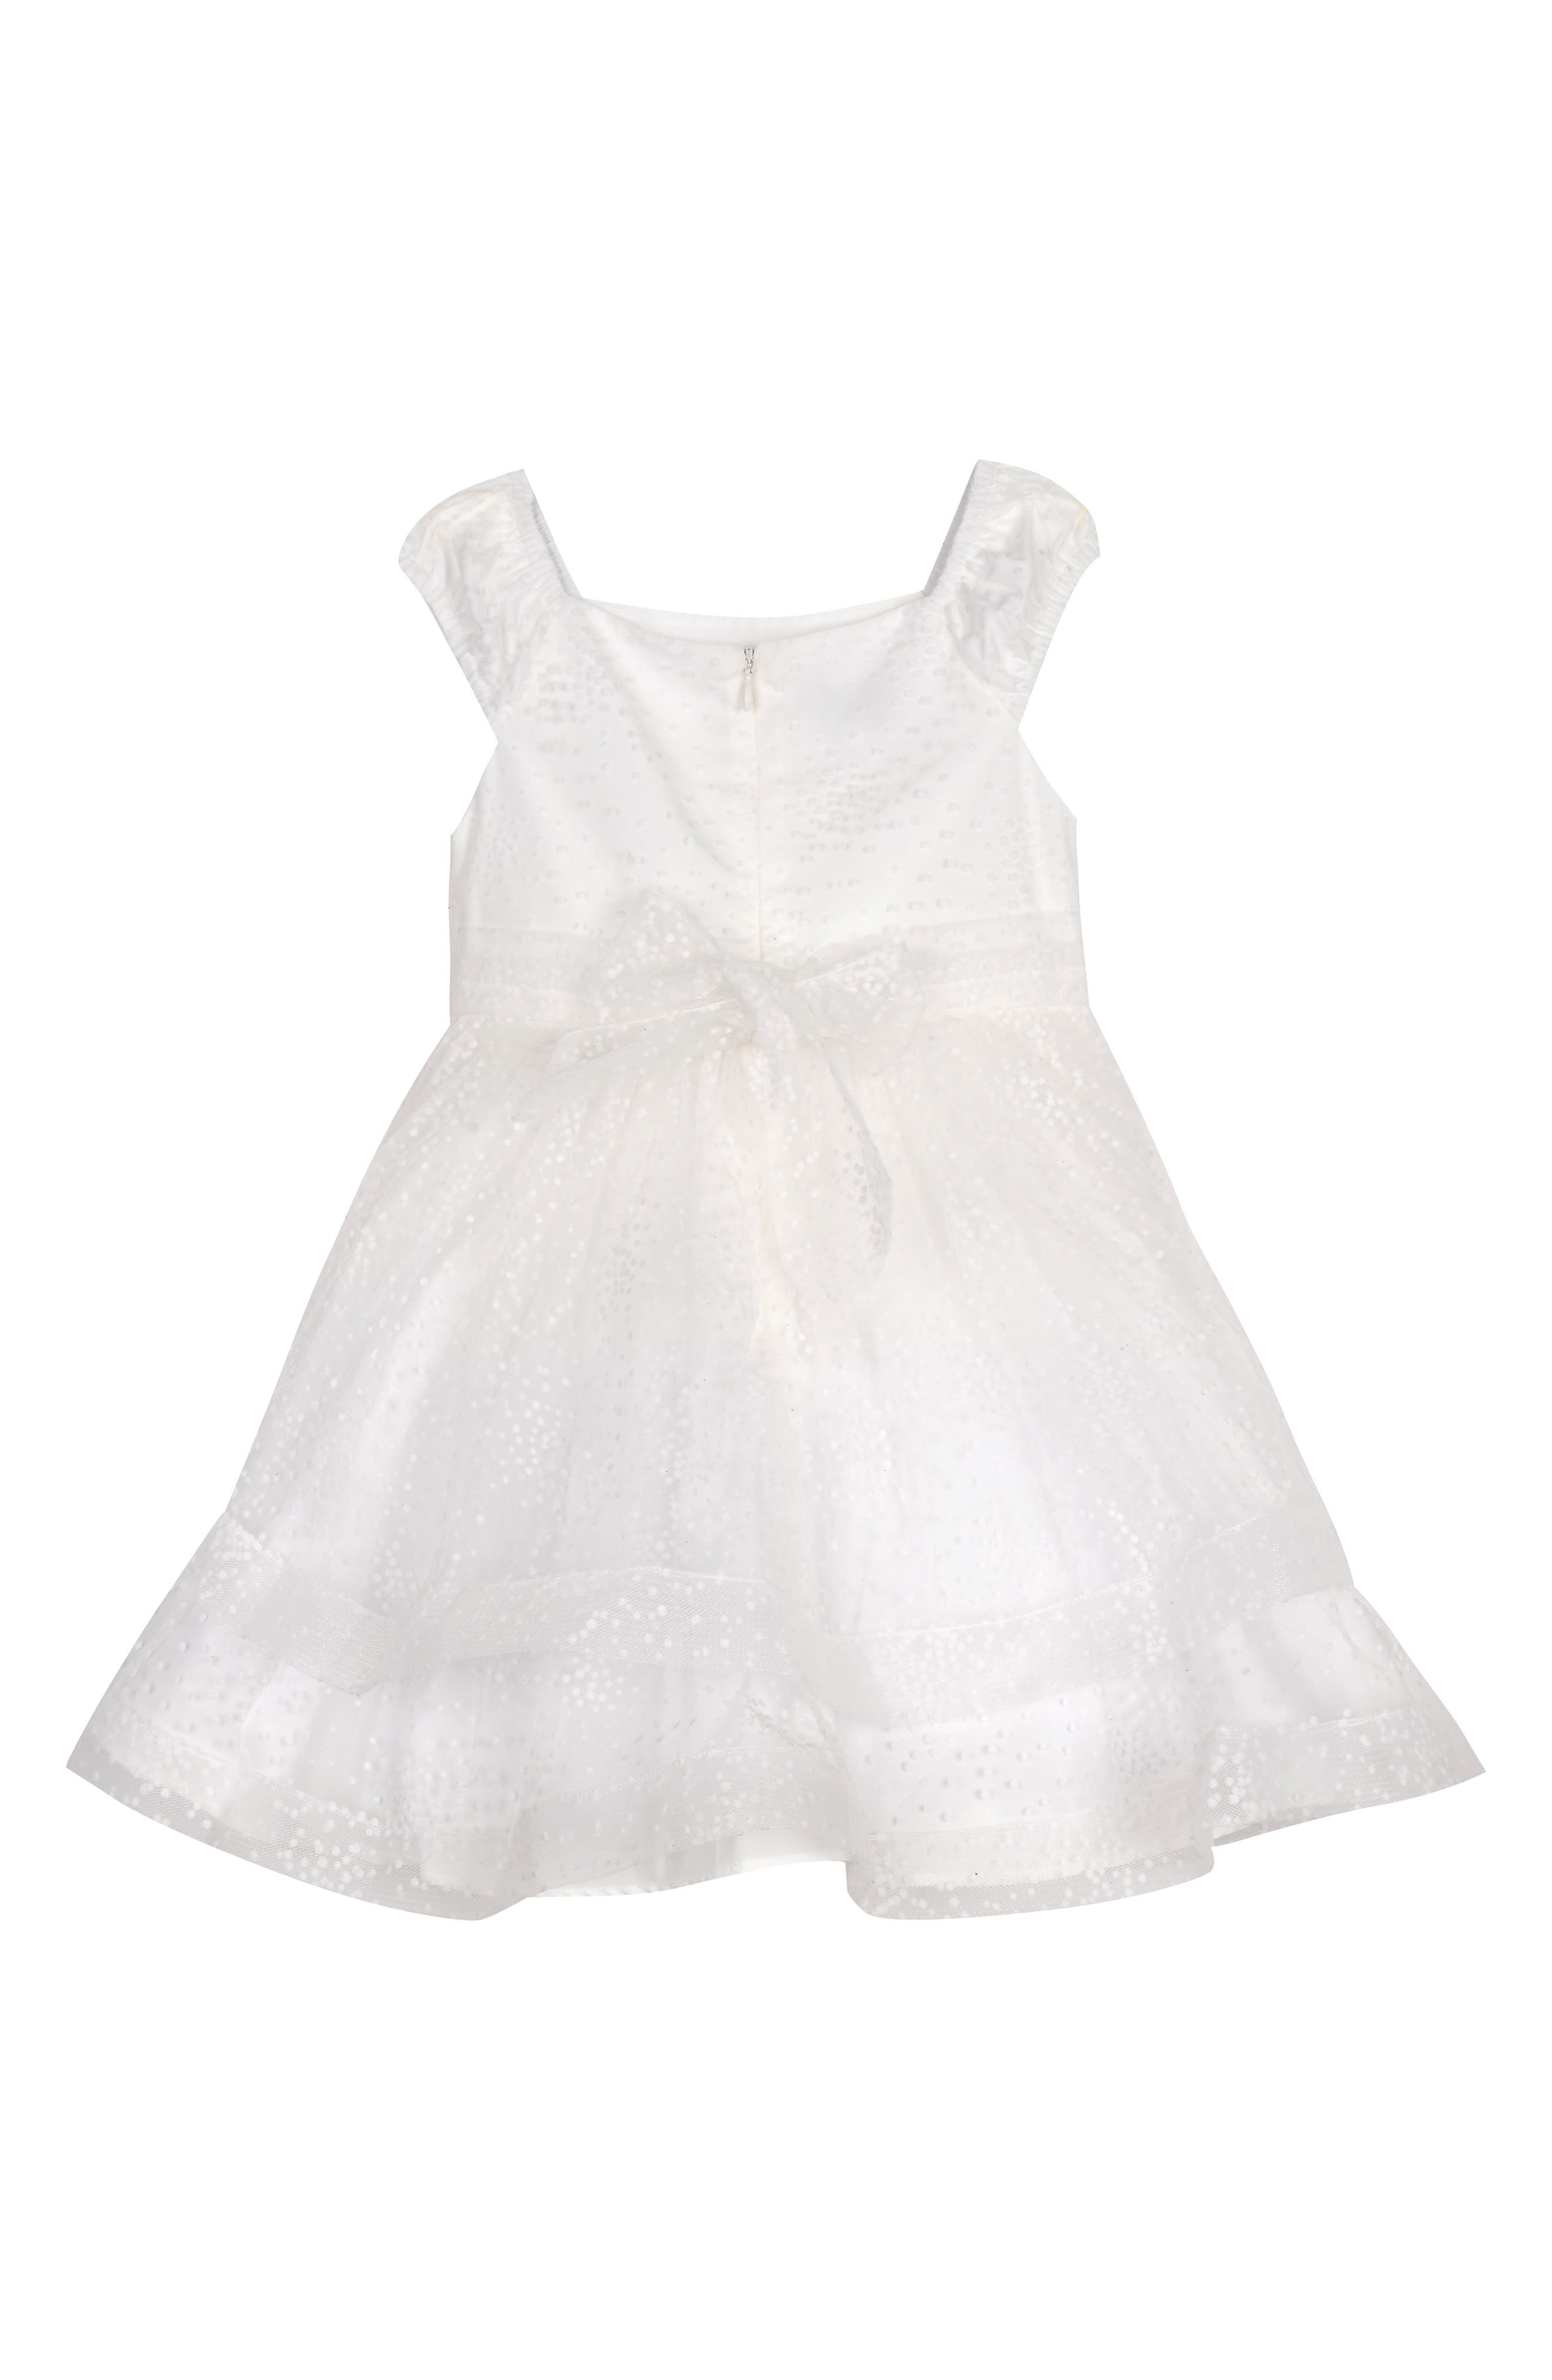 PIPPA & JULIE, Dot Texture Flower Girl Dress, Alternate thumbnail 2, color, WHITE